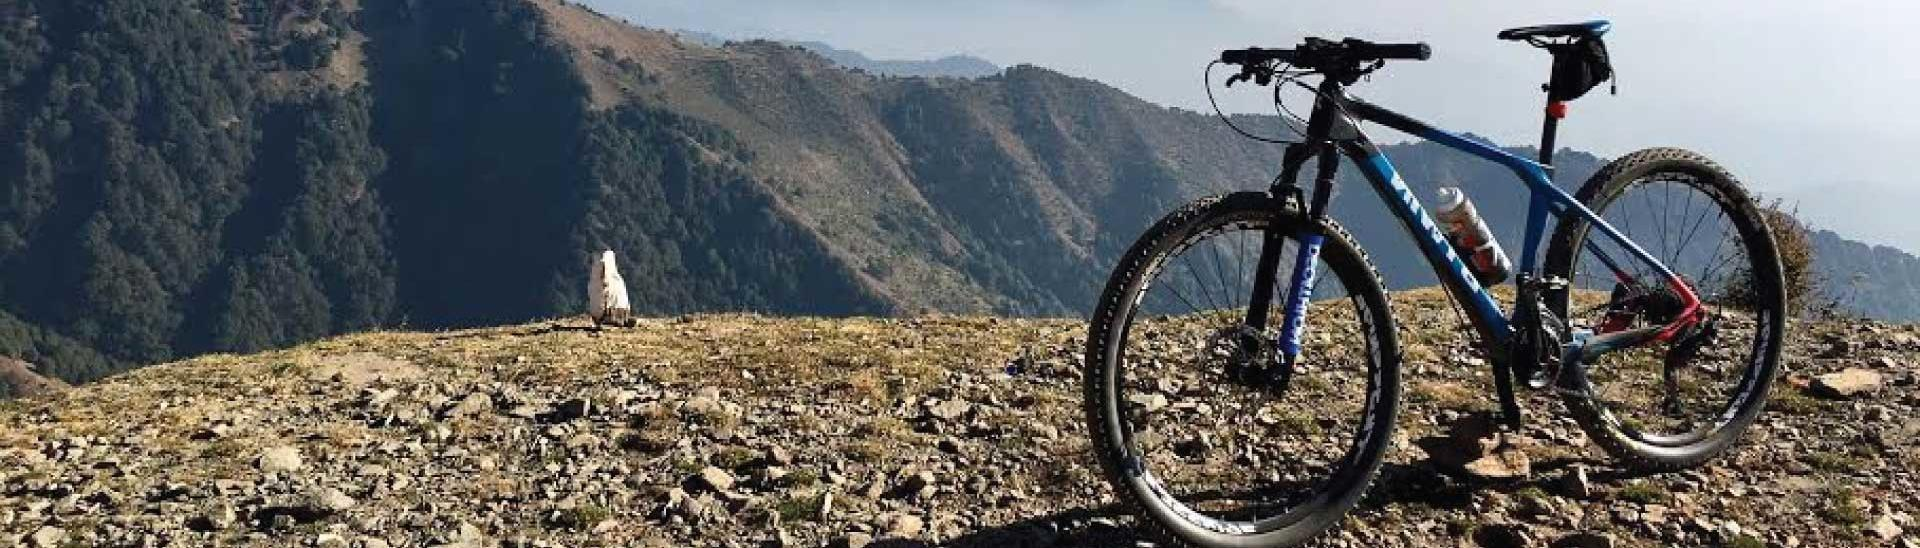 7 MTB trails in India you must explore